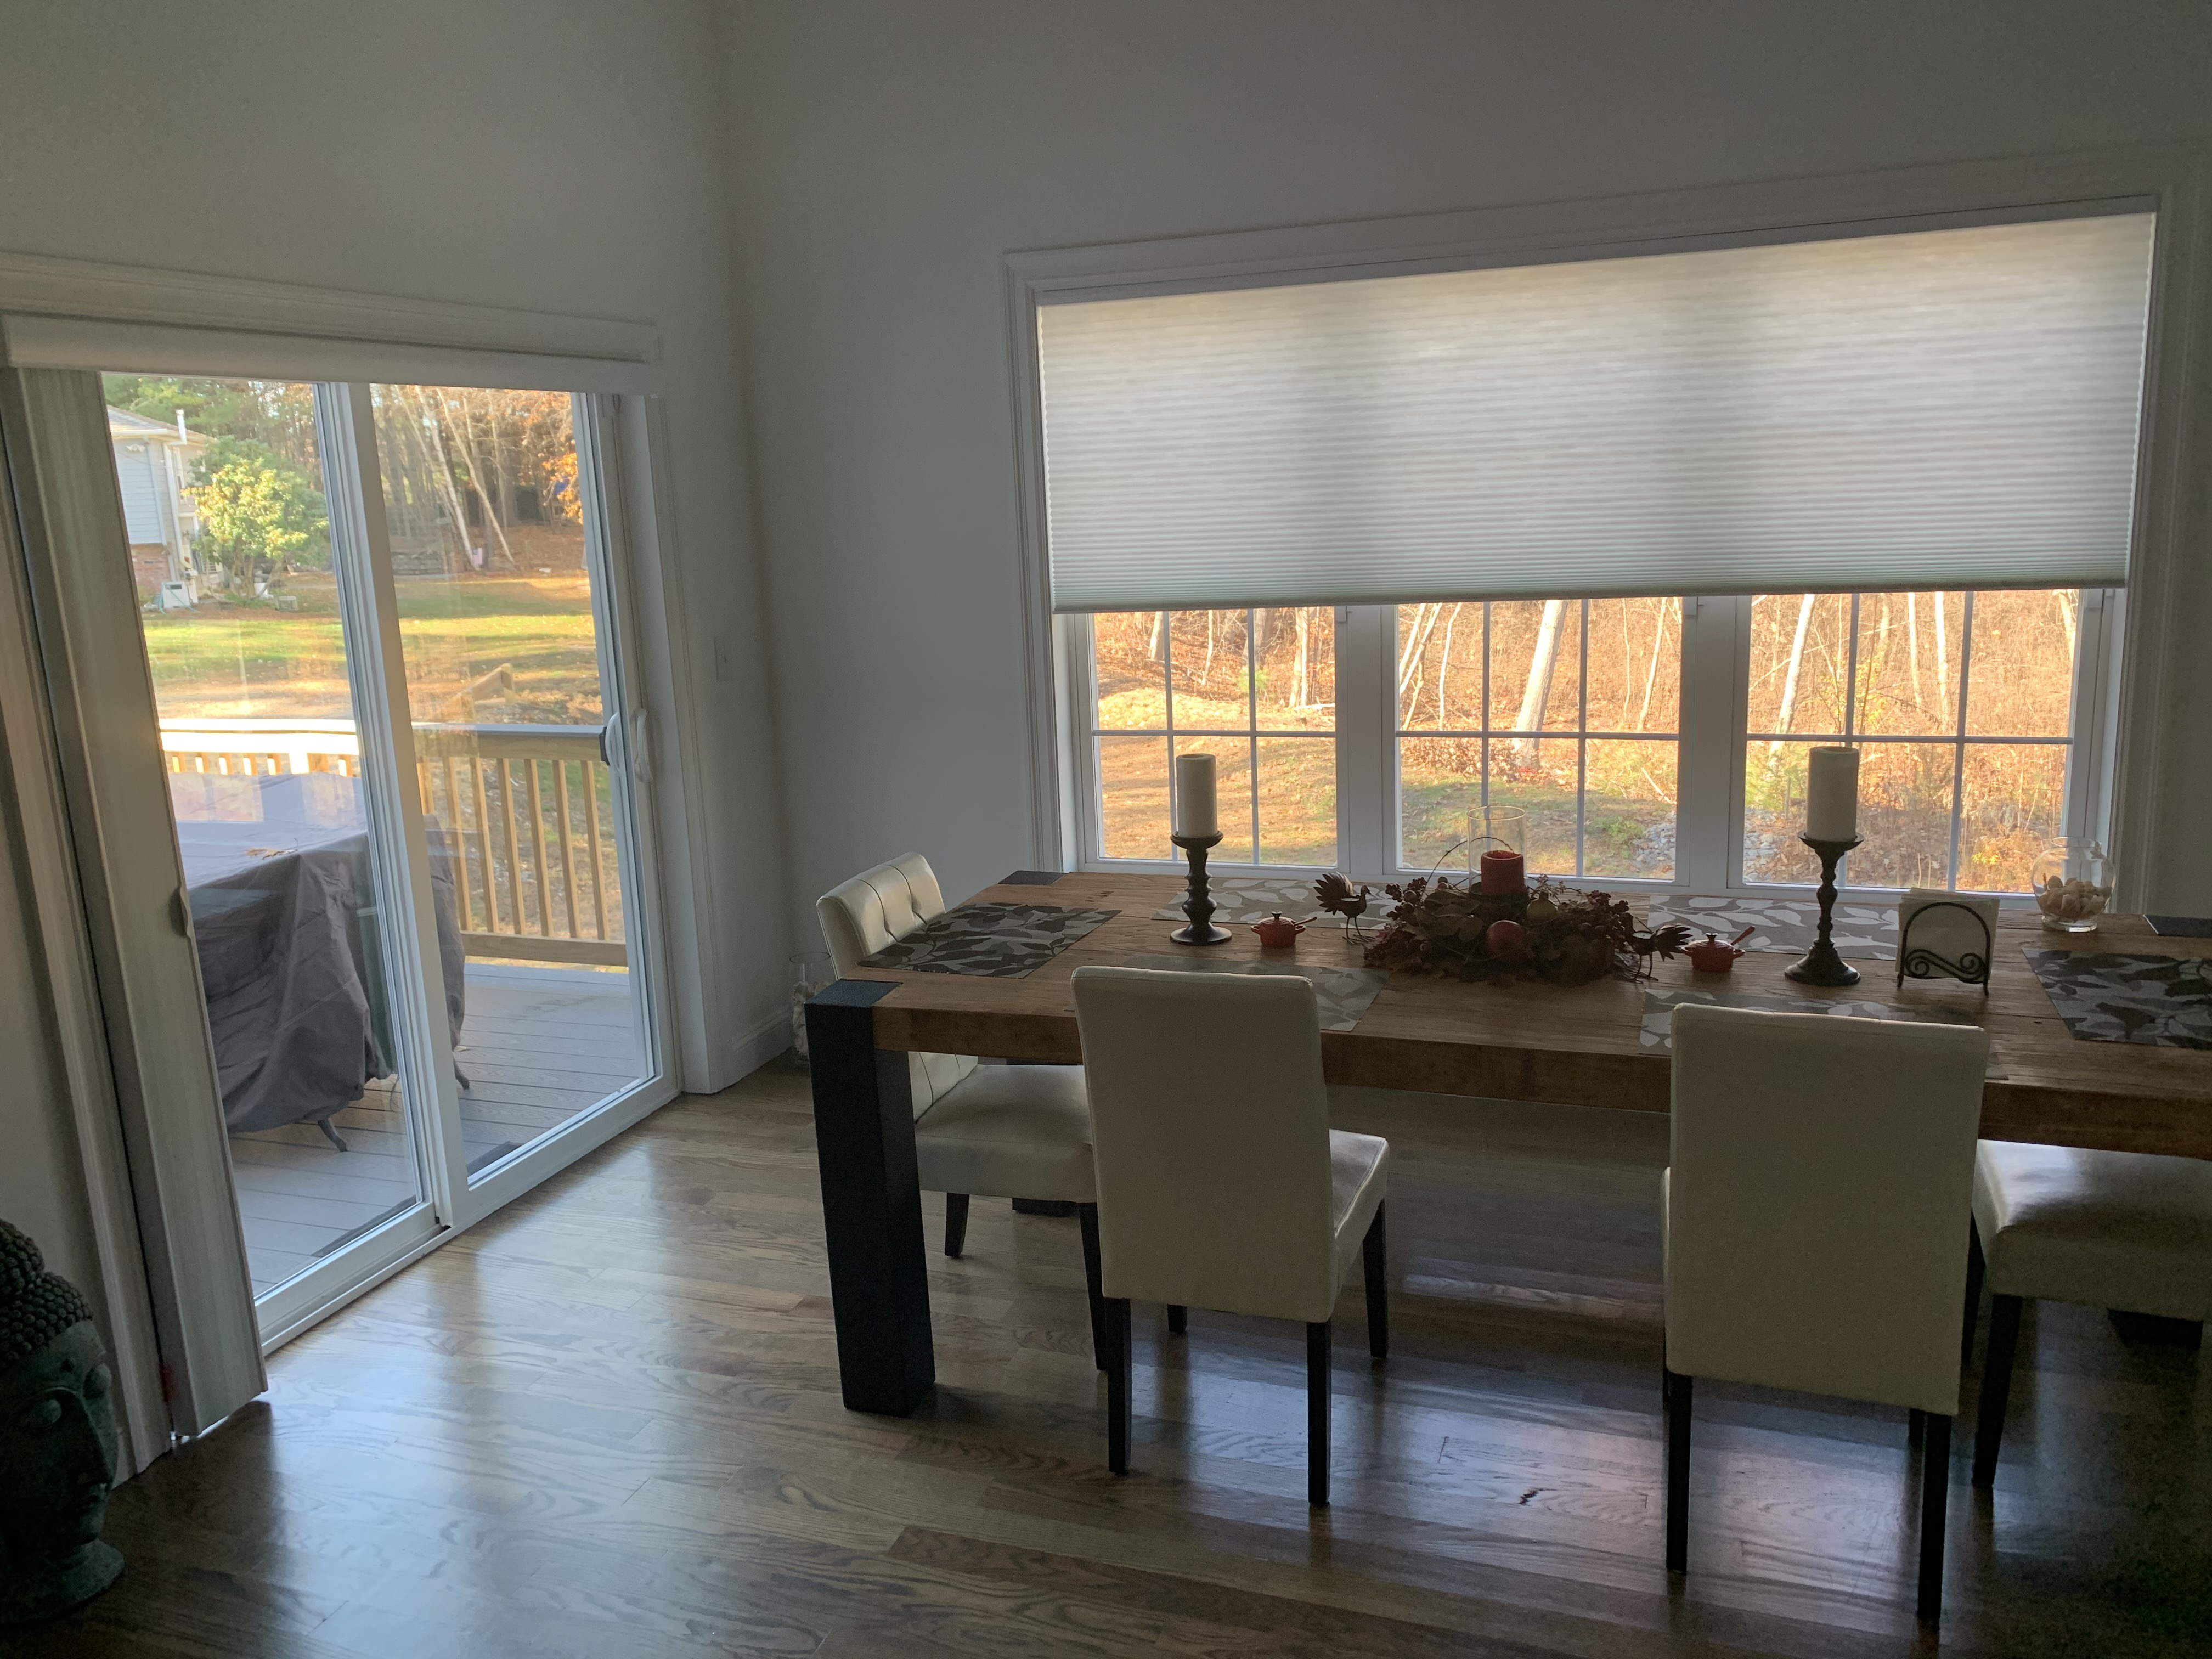 Vertiglide and Large Shade in Dining Room